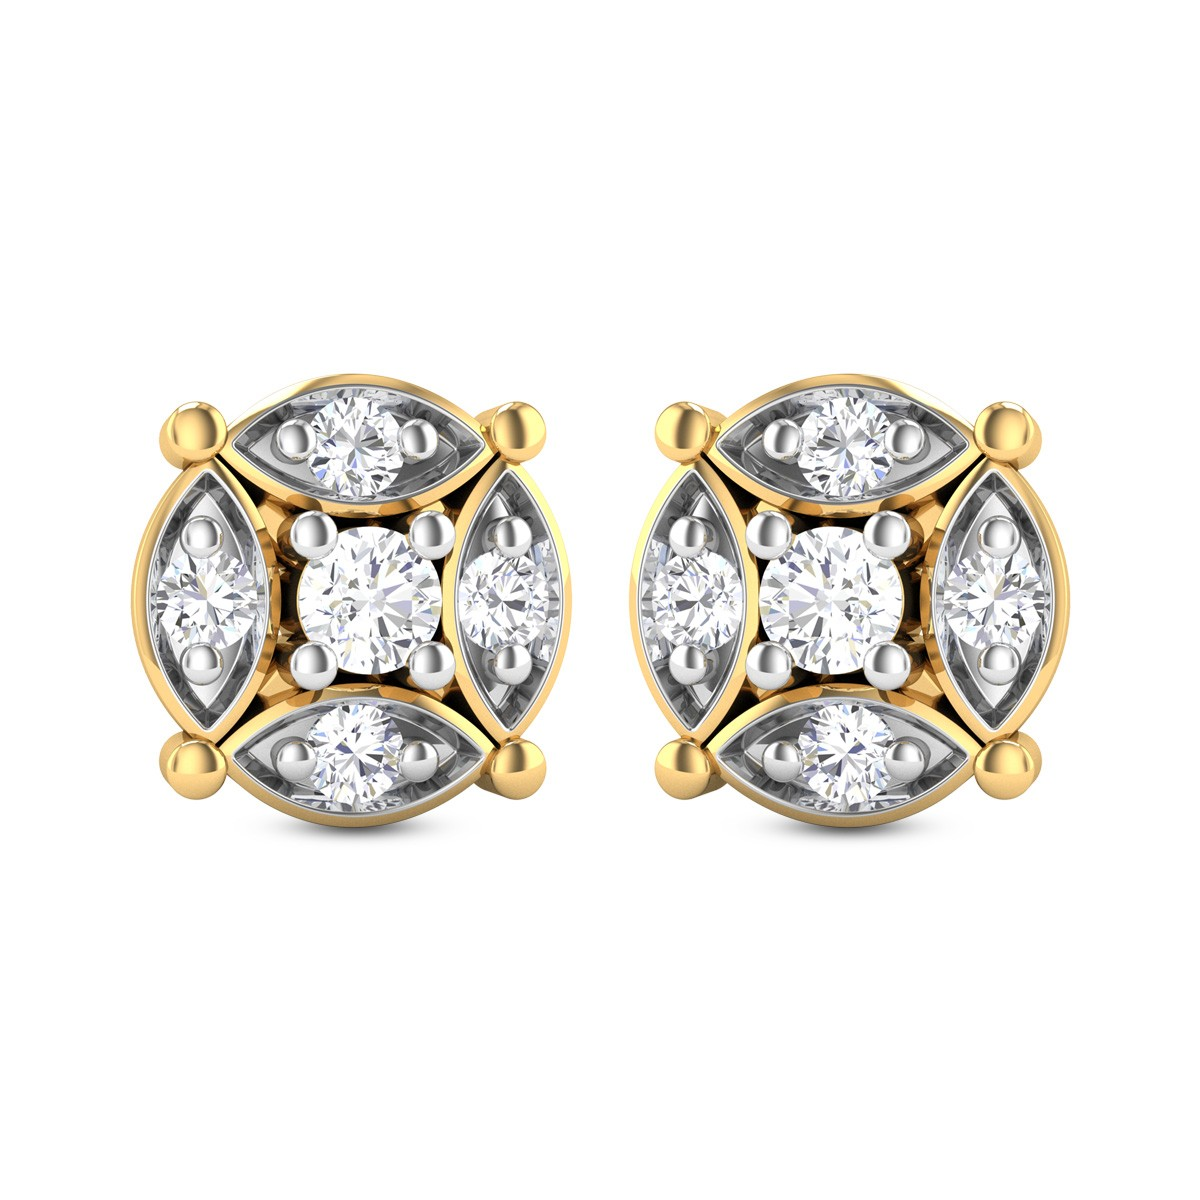 Novea Diamond Earrings